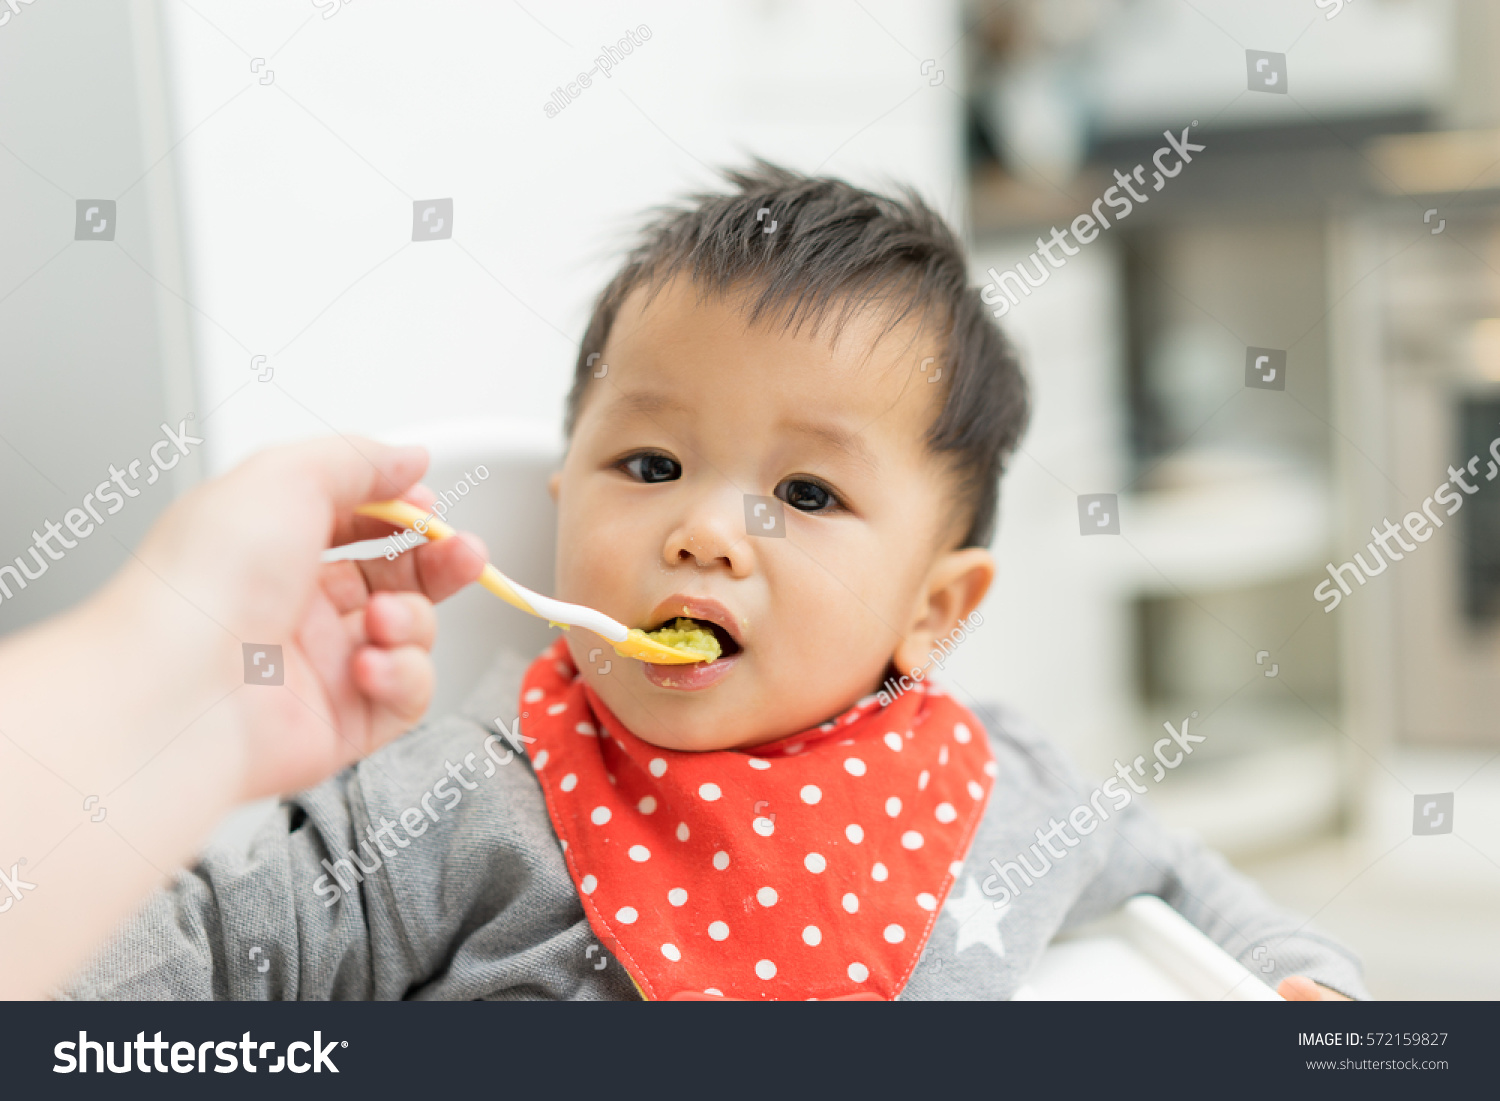 Baby Food Chair Asian Baby Boy Eating Blend Food Stock Photo 572159827